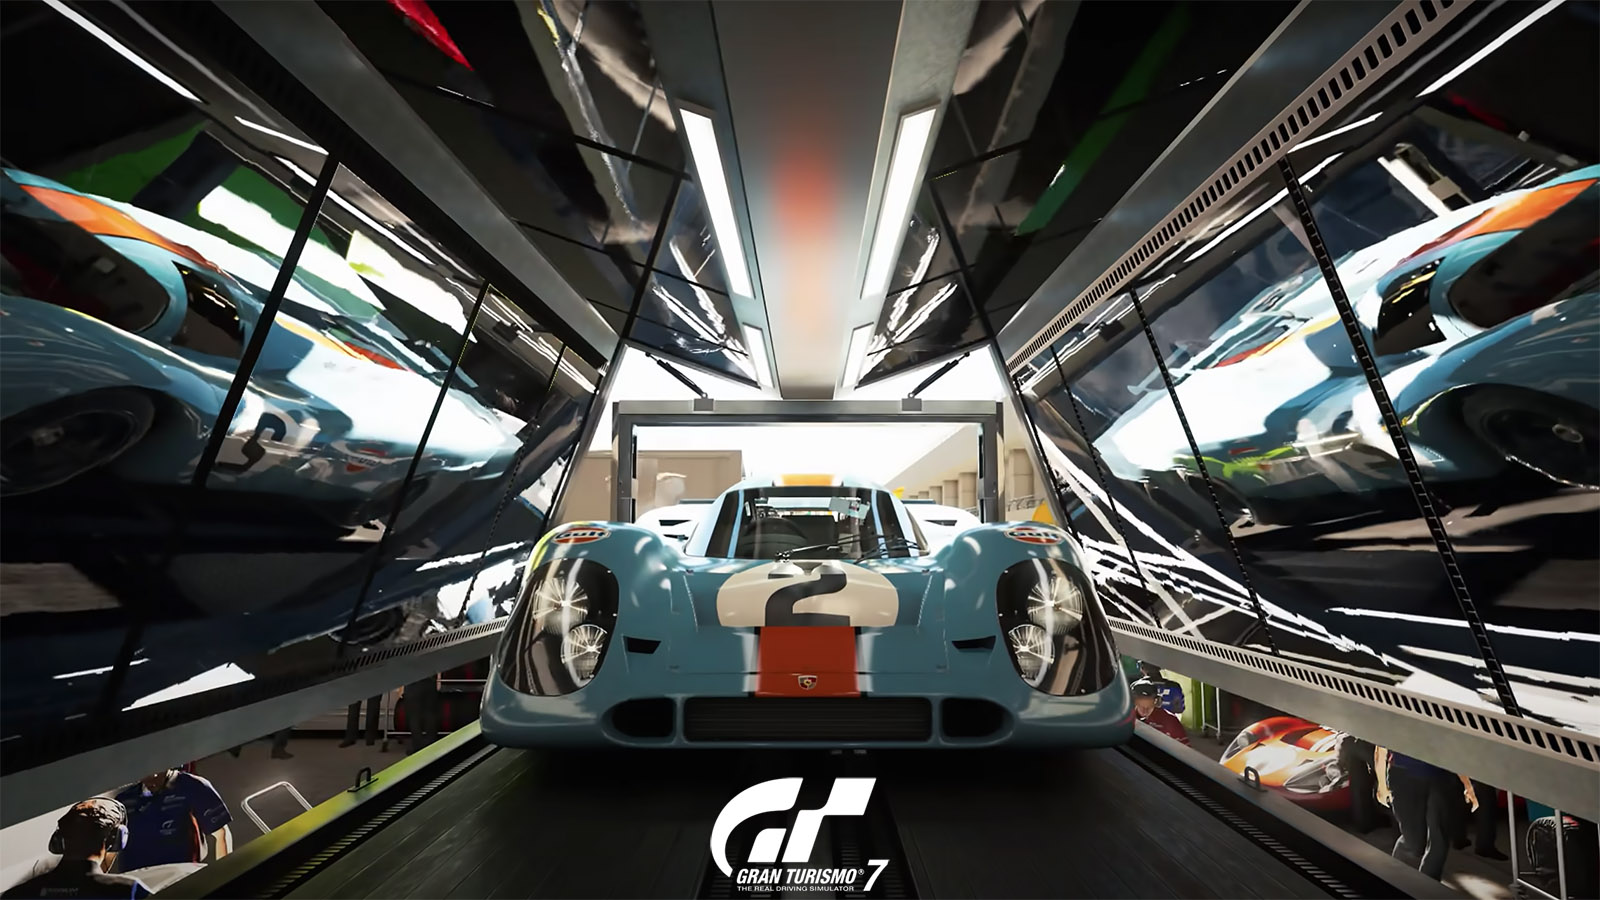 Gran Turismo 7 confirmed cars list